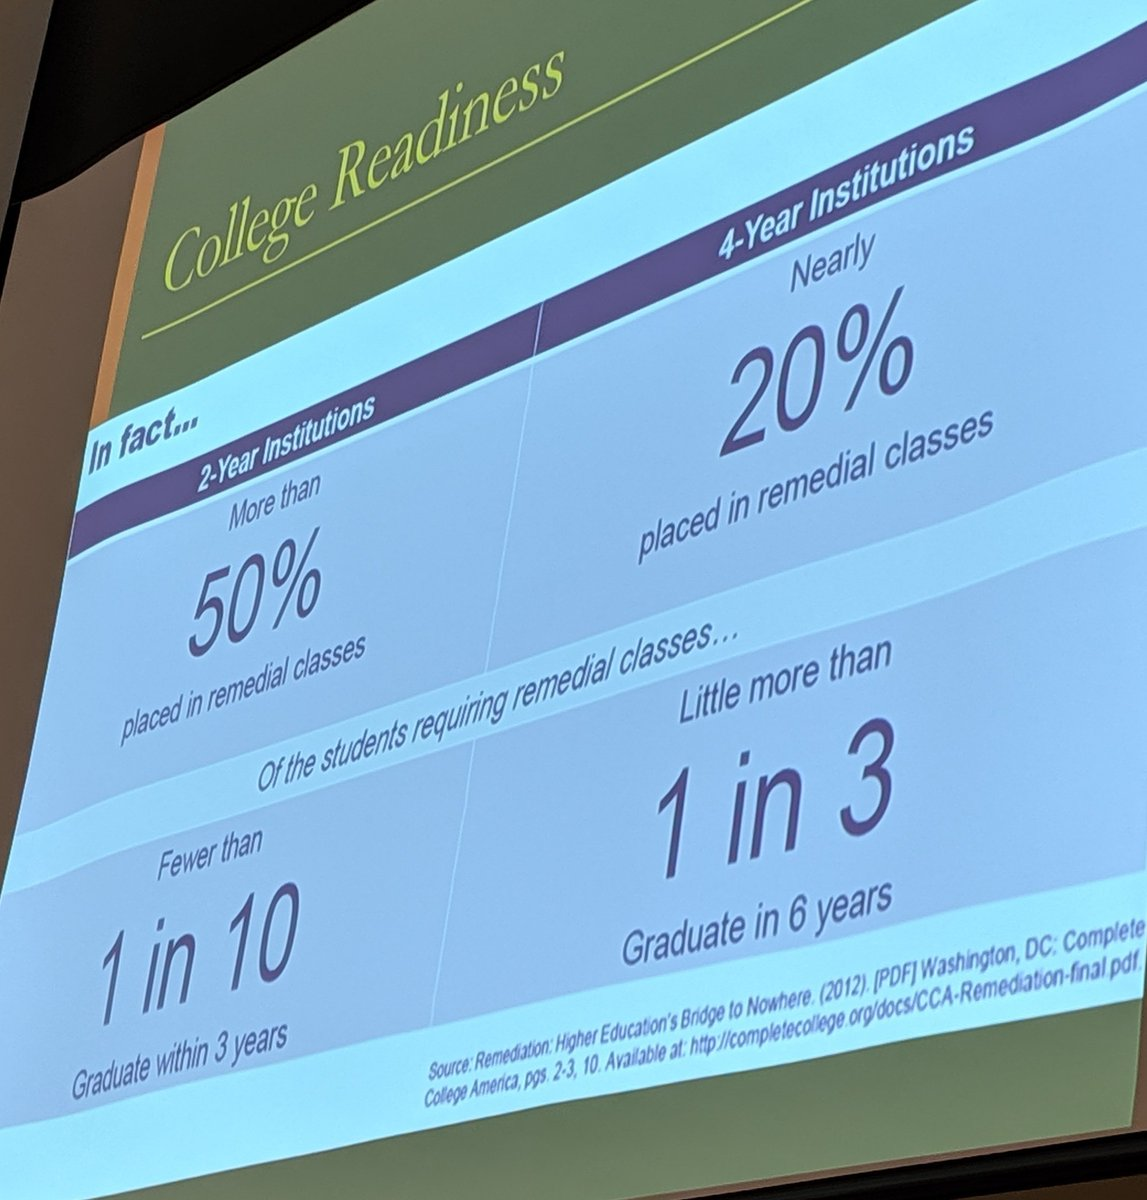 If we are preparing students for College & Careers, how do we explain these numbers?